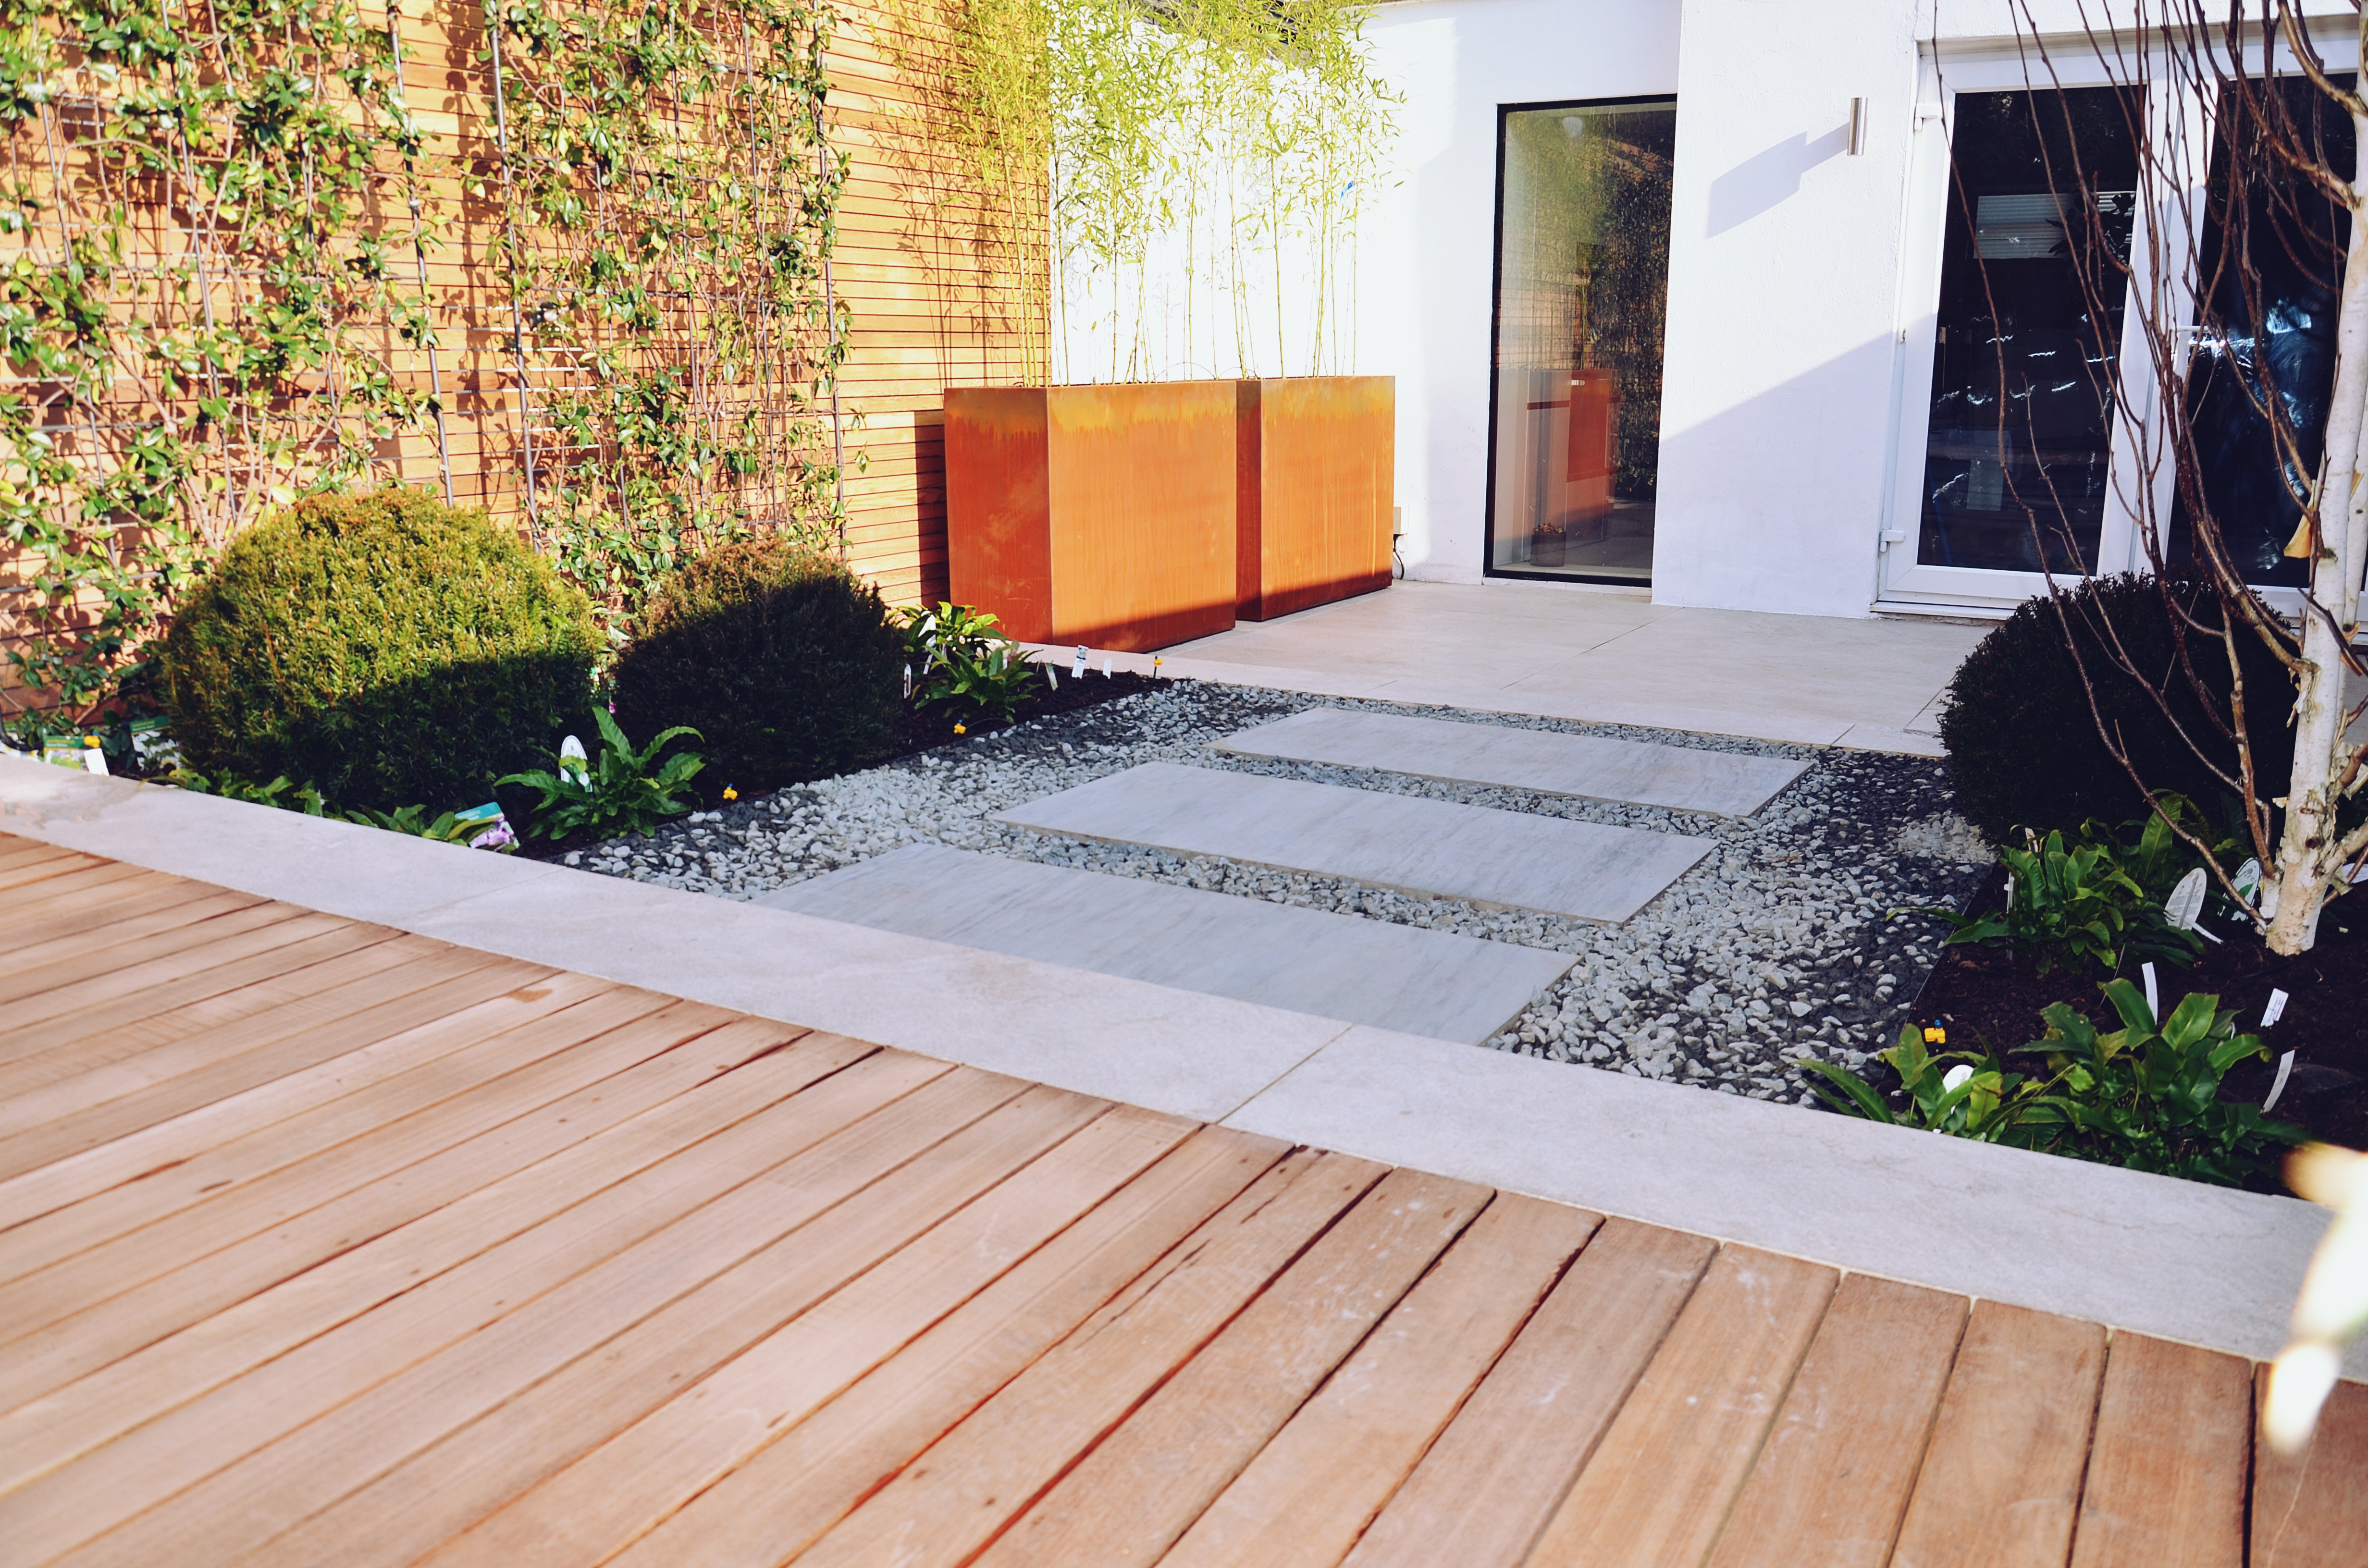 Garden builders Anewgarden Modern contemporary style London hardwood deck corten planter